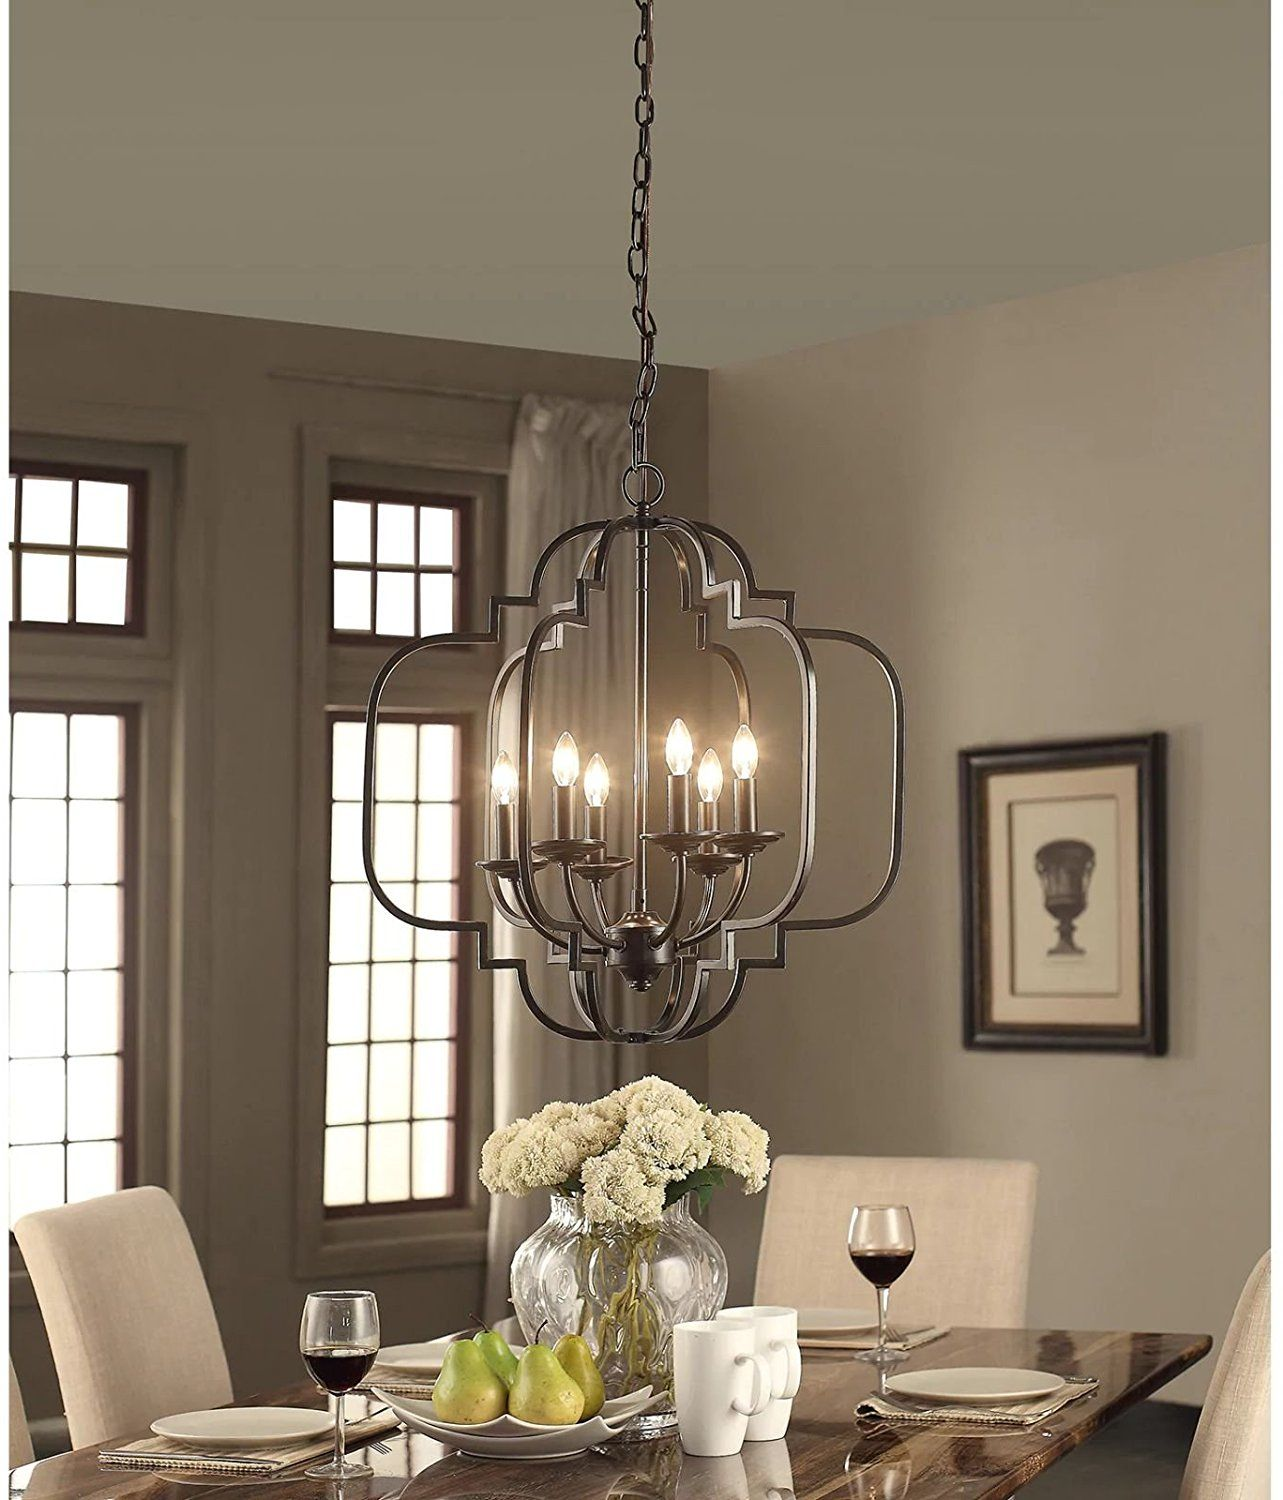 Modern Farmhouse Chandelier Suitable For Dining Rooms And Entryways With High Or Low Ceilings Cand Bronze Chandelier Farmhouse Chandelier Dining Room Lighting